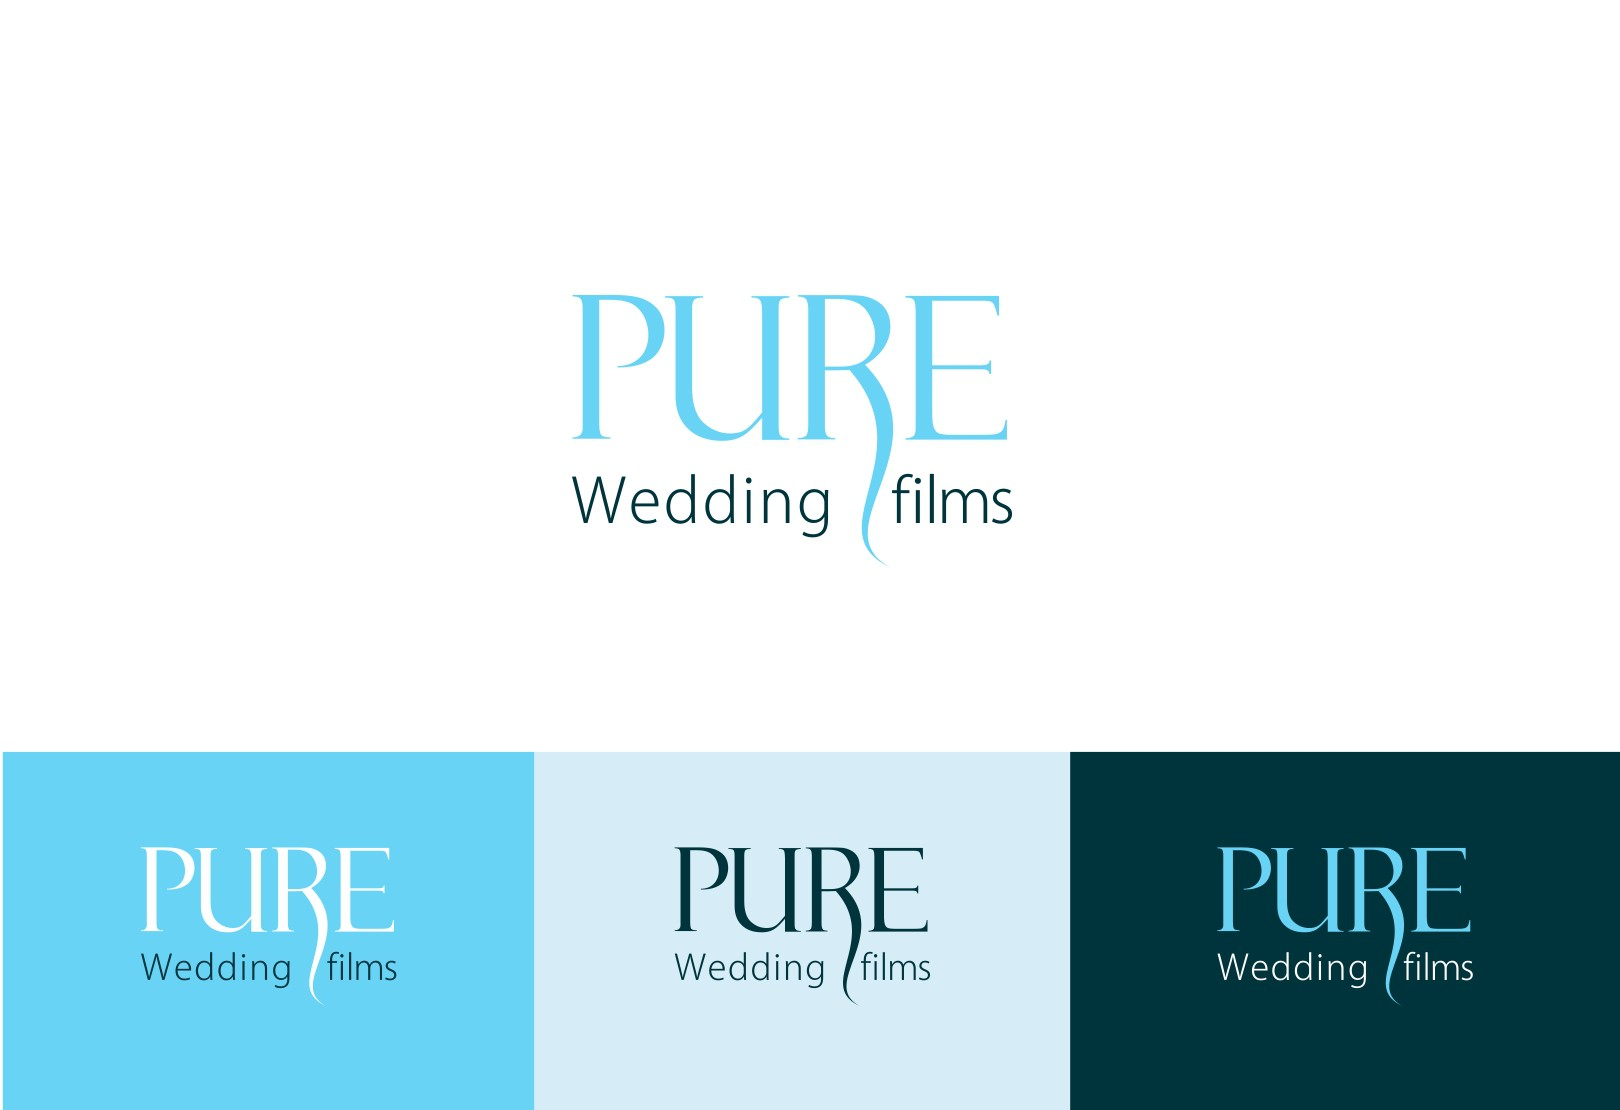 Help PURE Wedding Films with a new logo